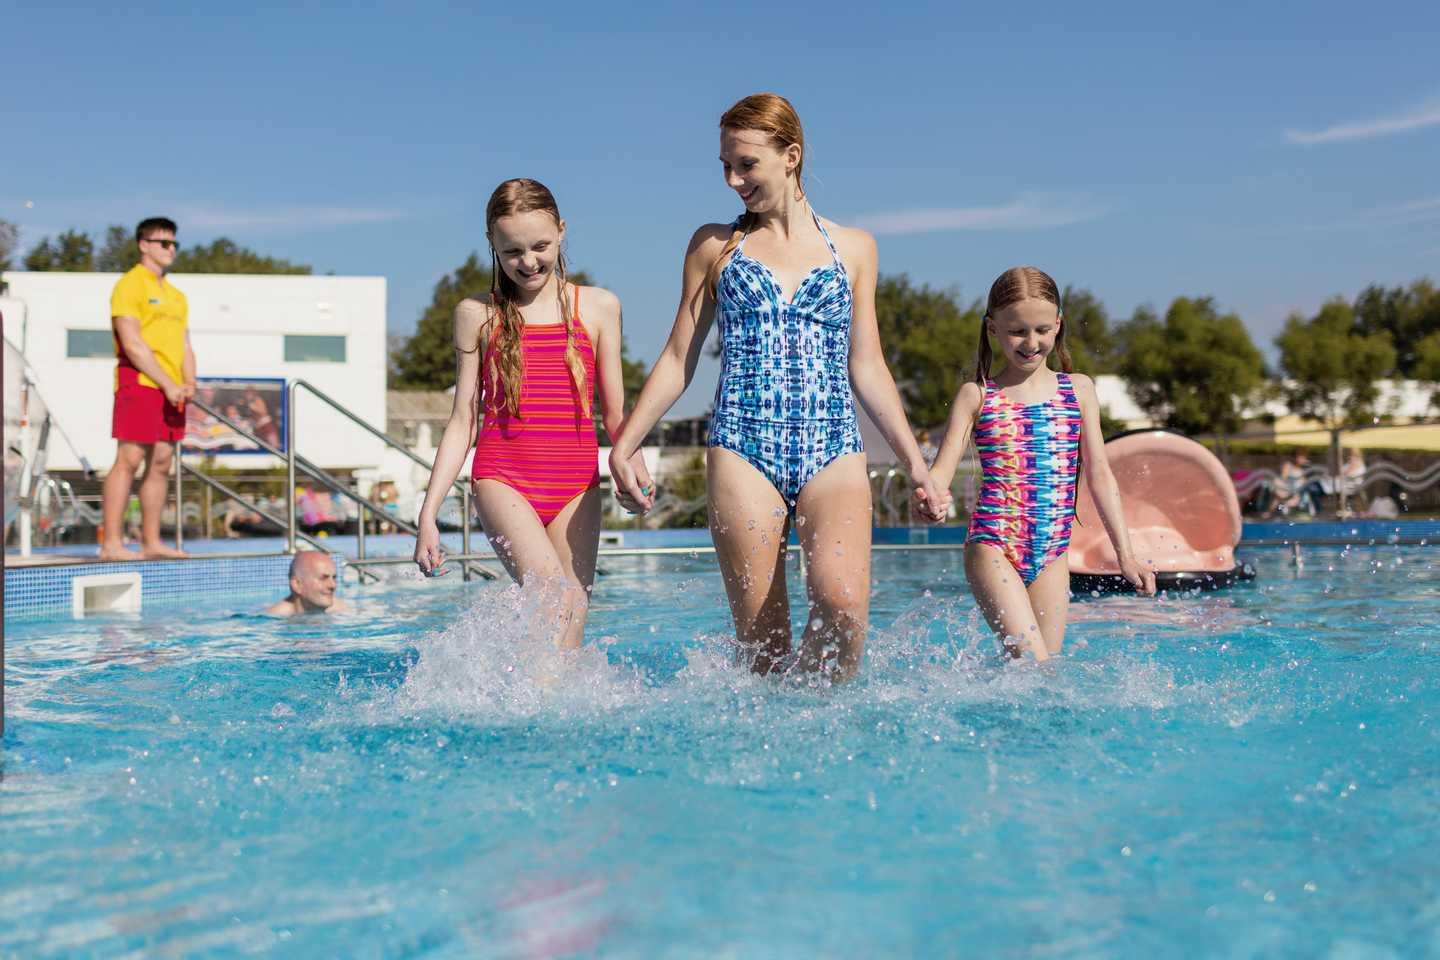 A family walking through the outdoor pool